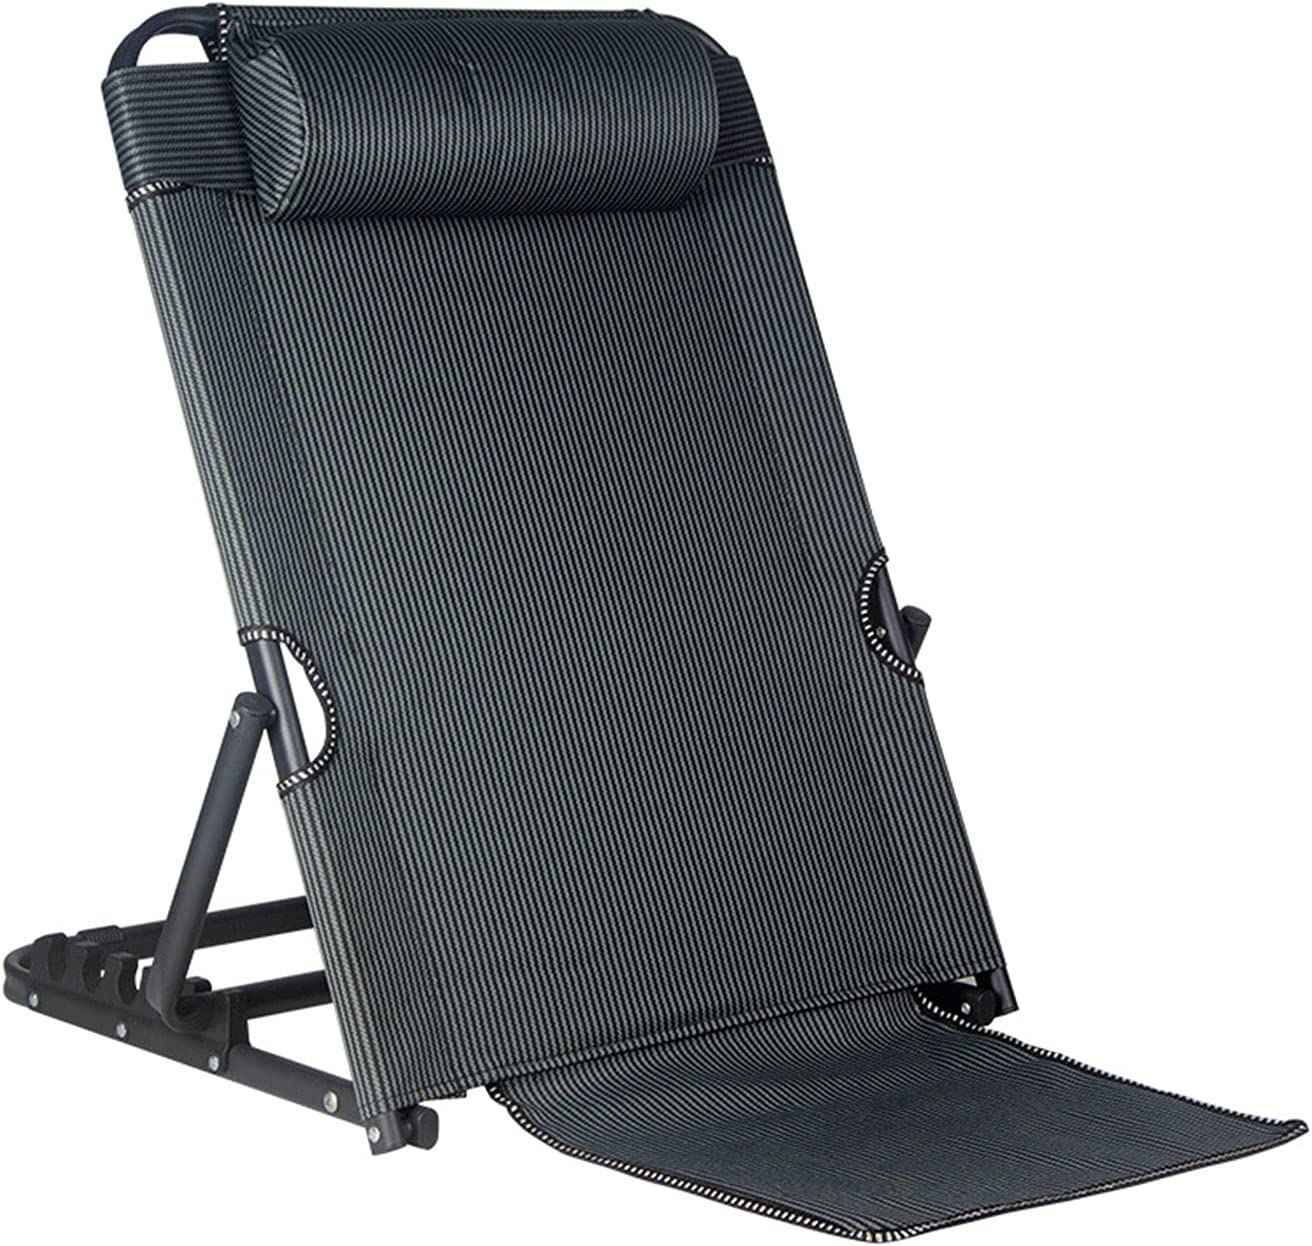 DUTUI Footless Sofa 67% OFF of fixed price Adjustable Recliner with Backrest Ch Folding New mail order